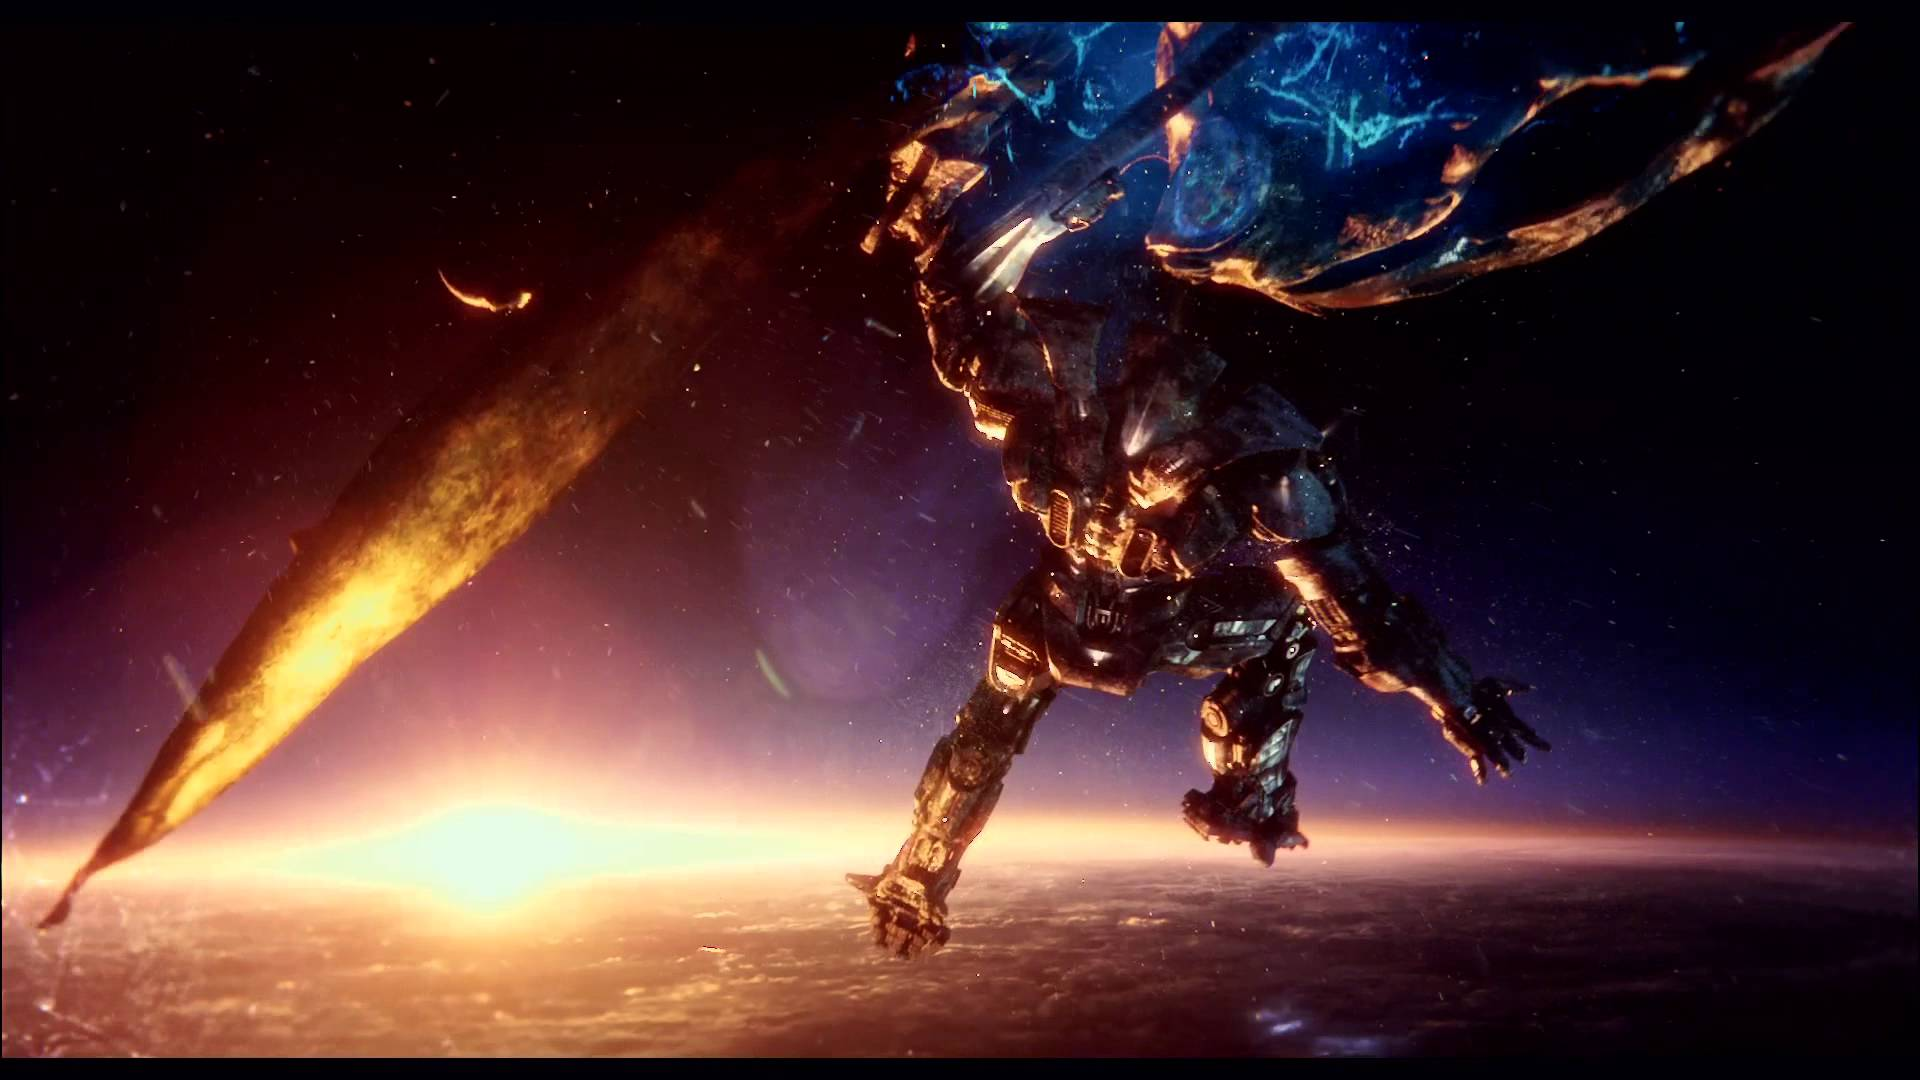 Pacific Rim Fight Scene Wallpaper Free Download